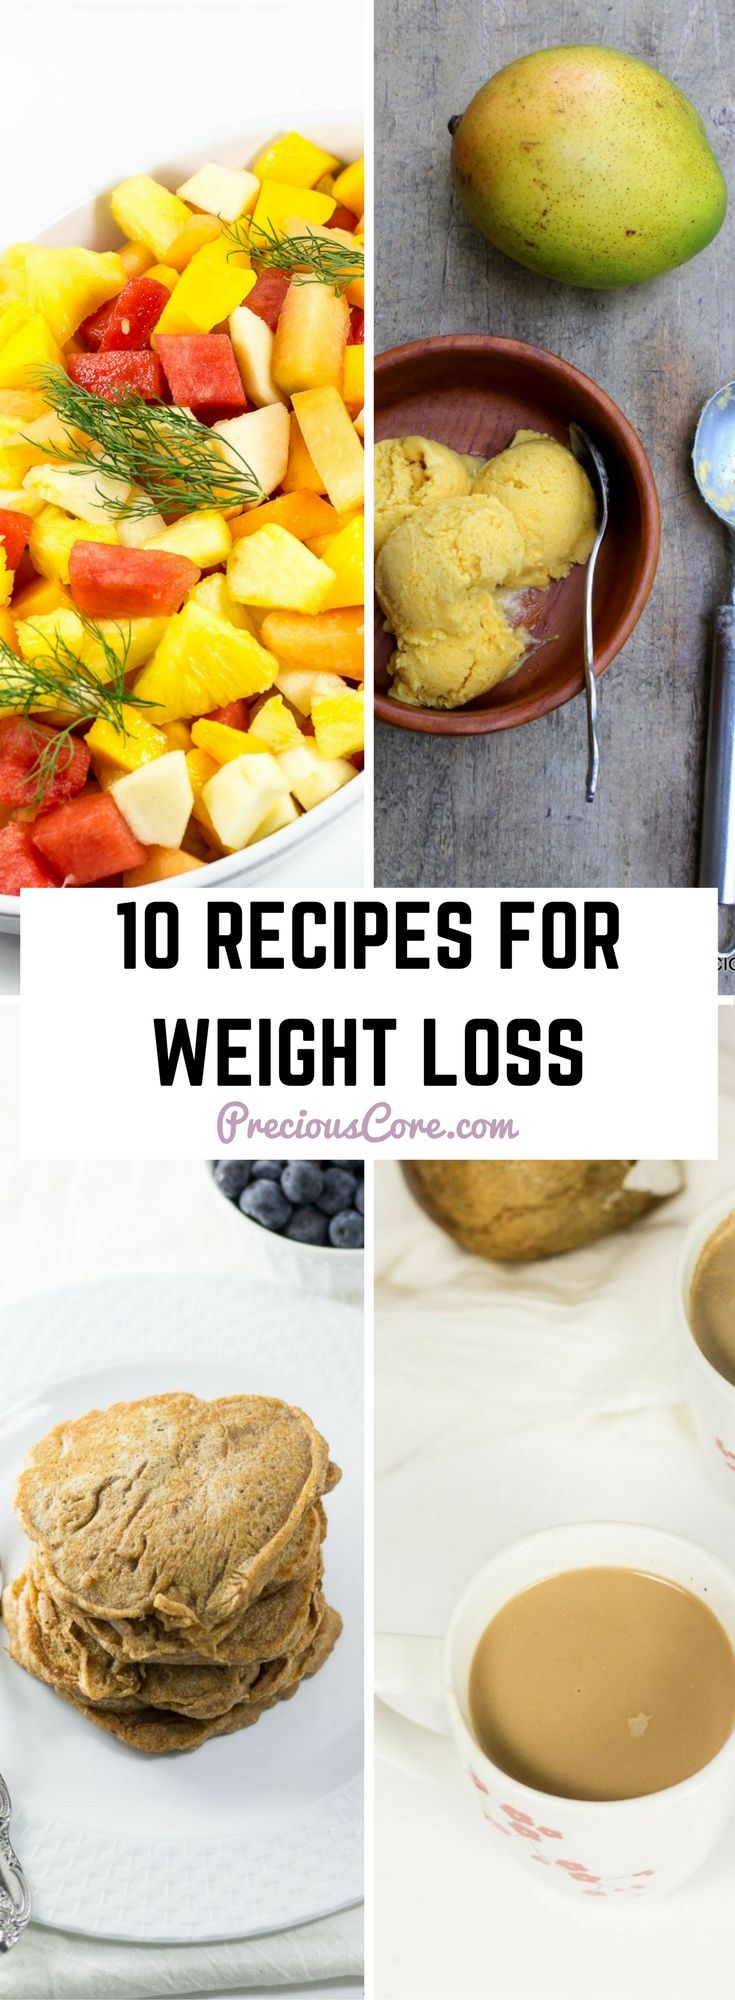 195 best precious core blog images on pinterest from dinner ideas to breakfast recipes and delicious drinks here are 10 recipes to help forumfinder Image collections